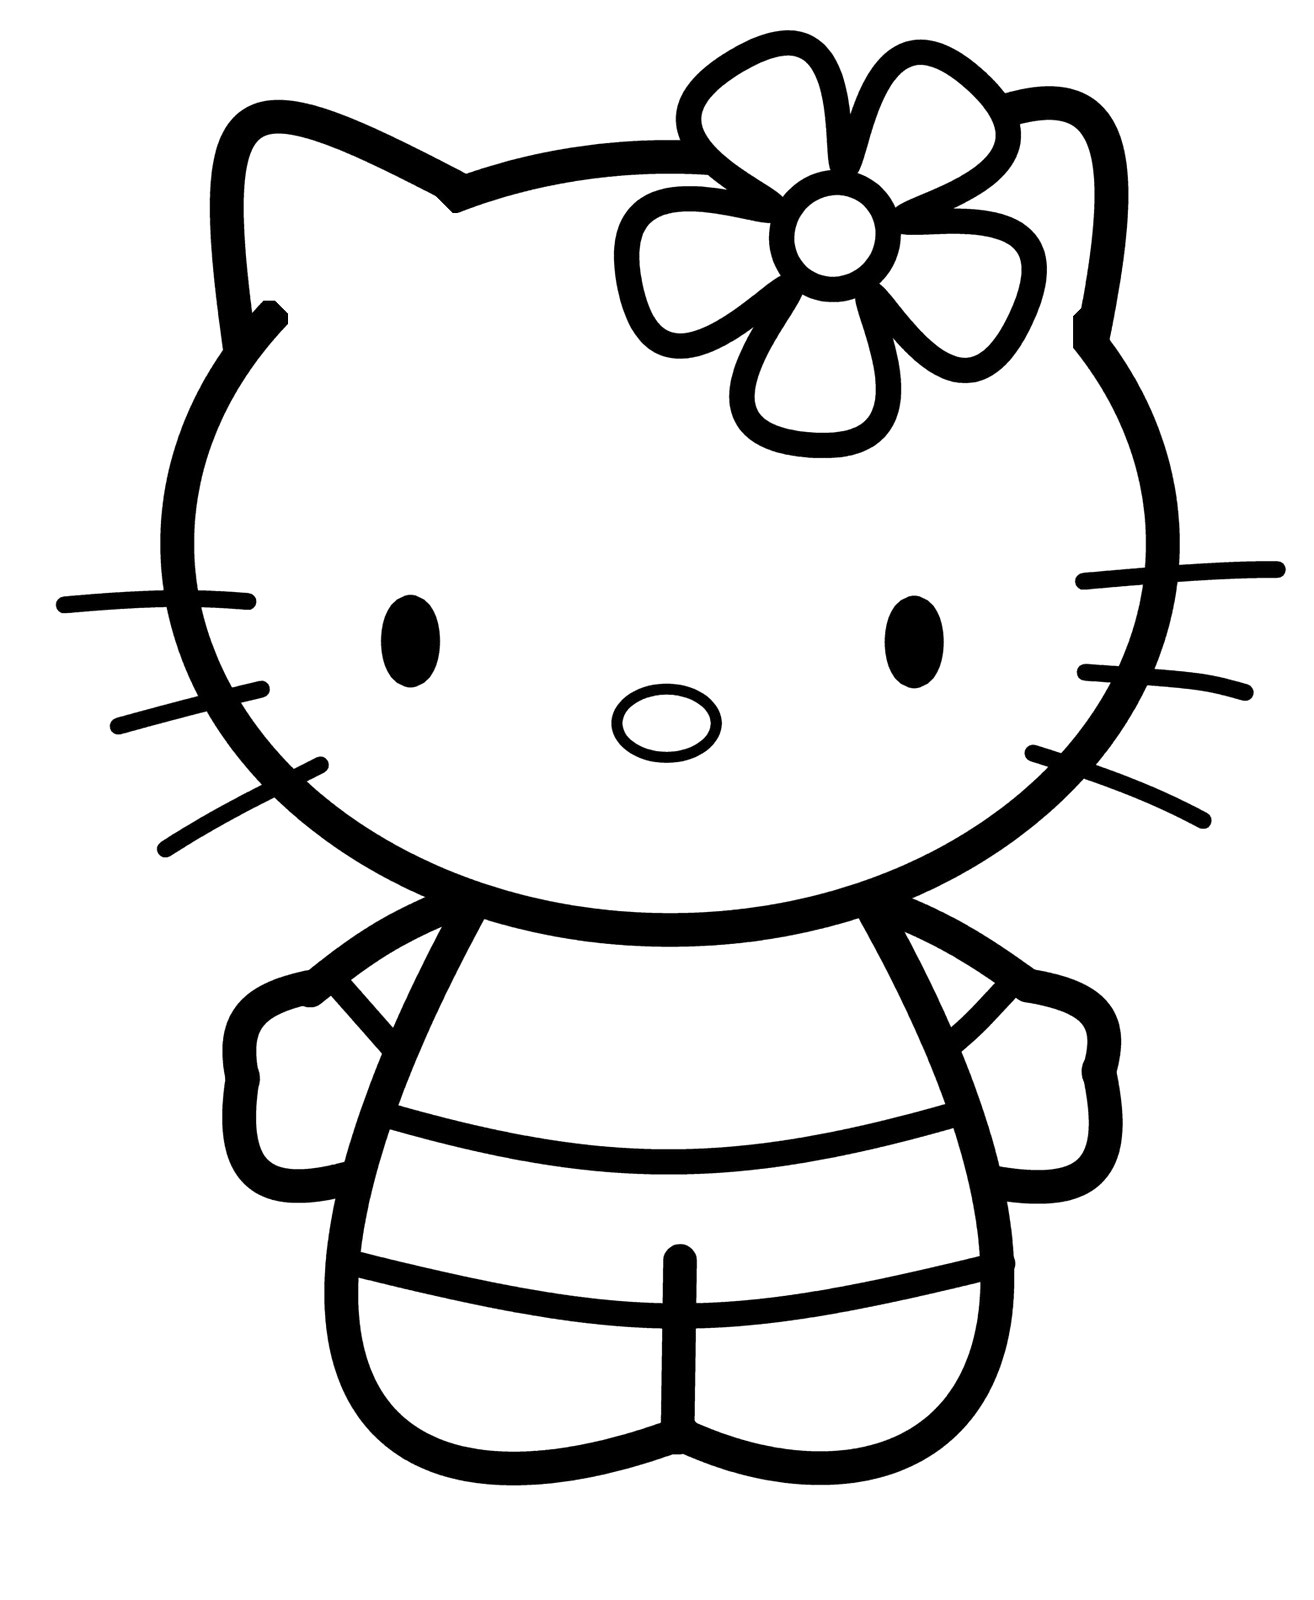 1314x1600 Face Hello Kitty How To Draw Youtube Easy Drawing Drawn